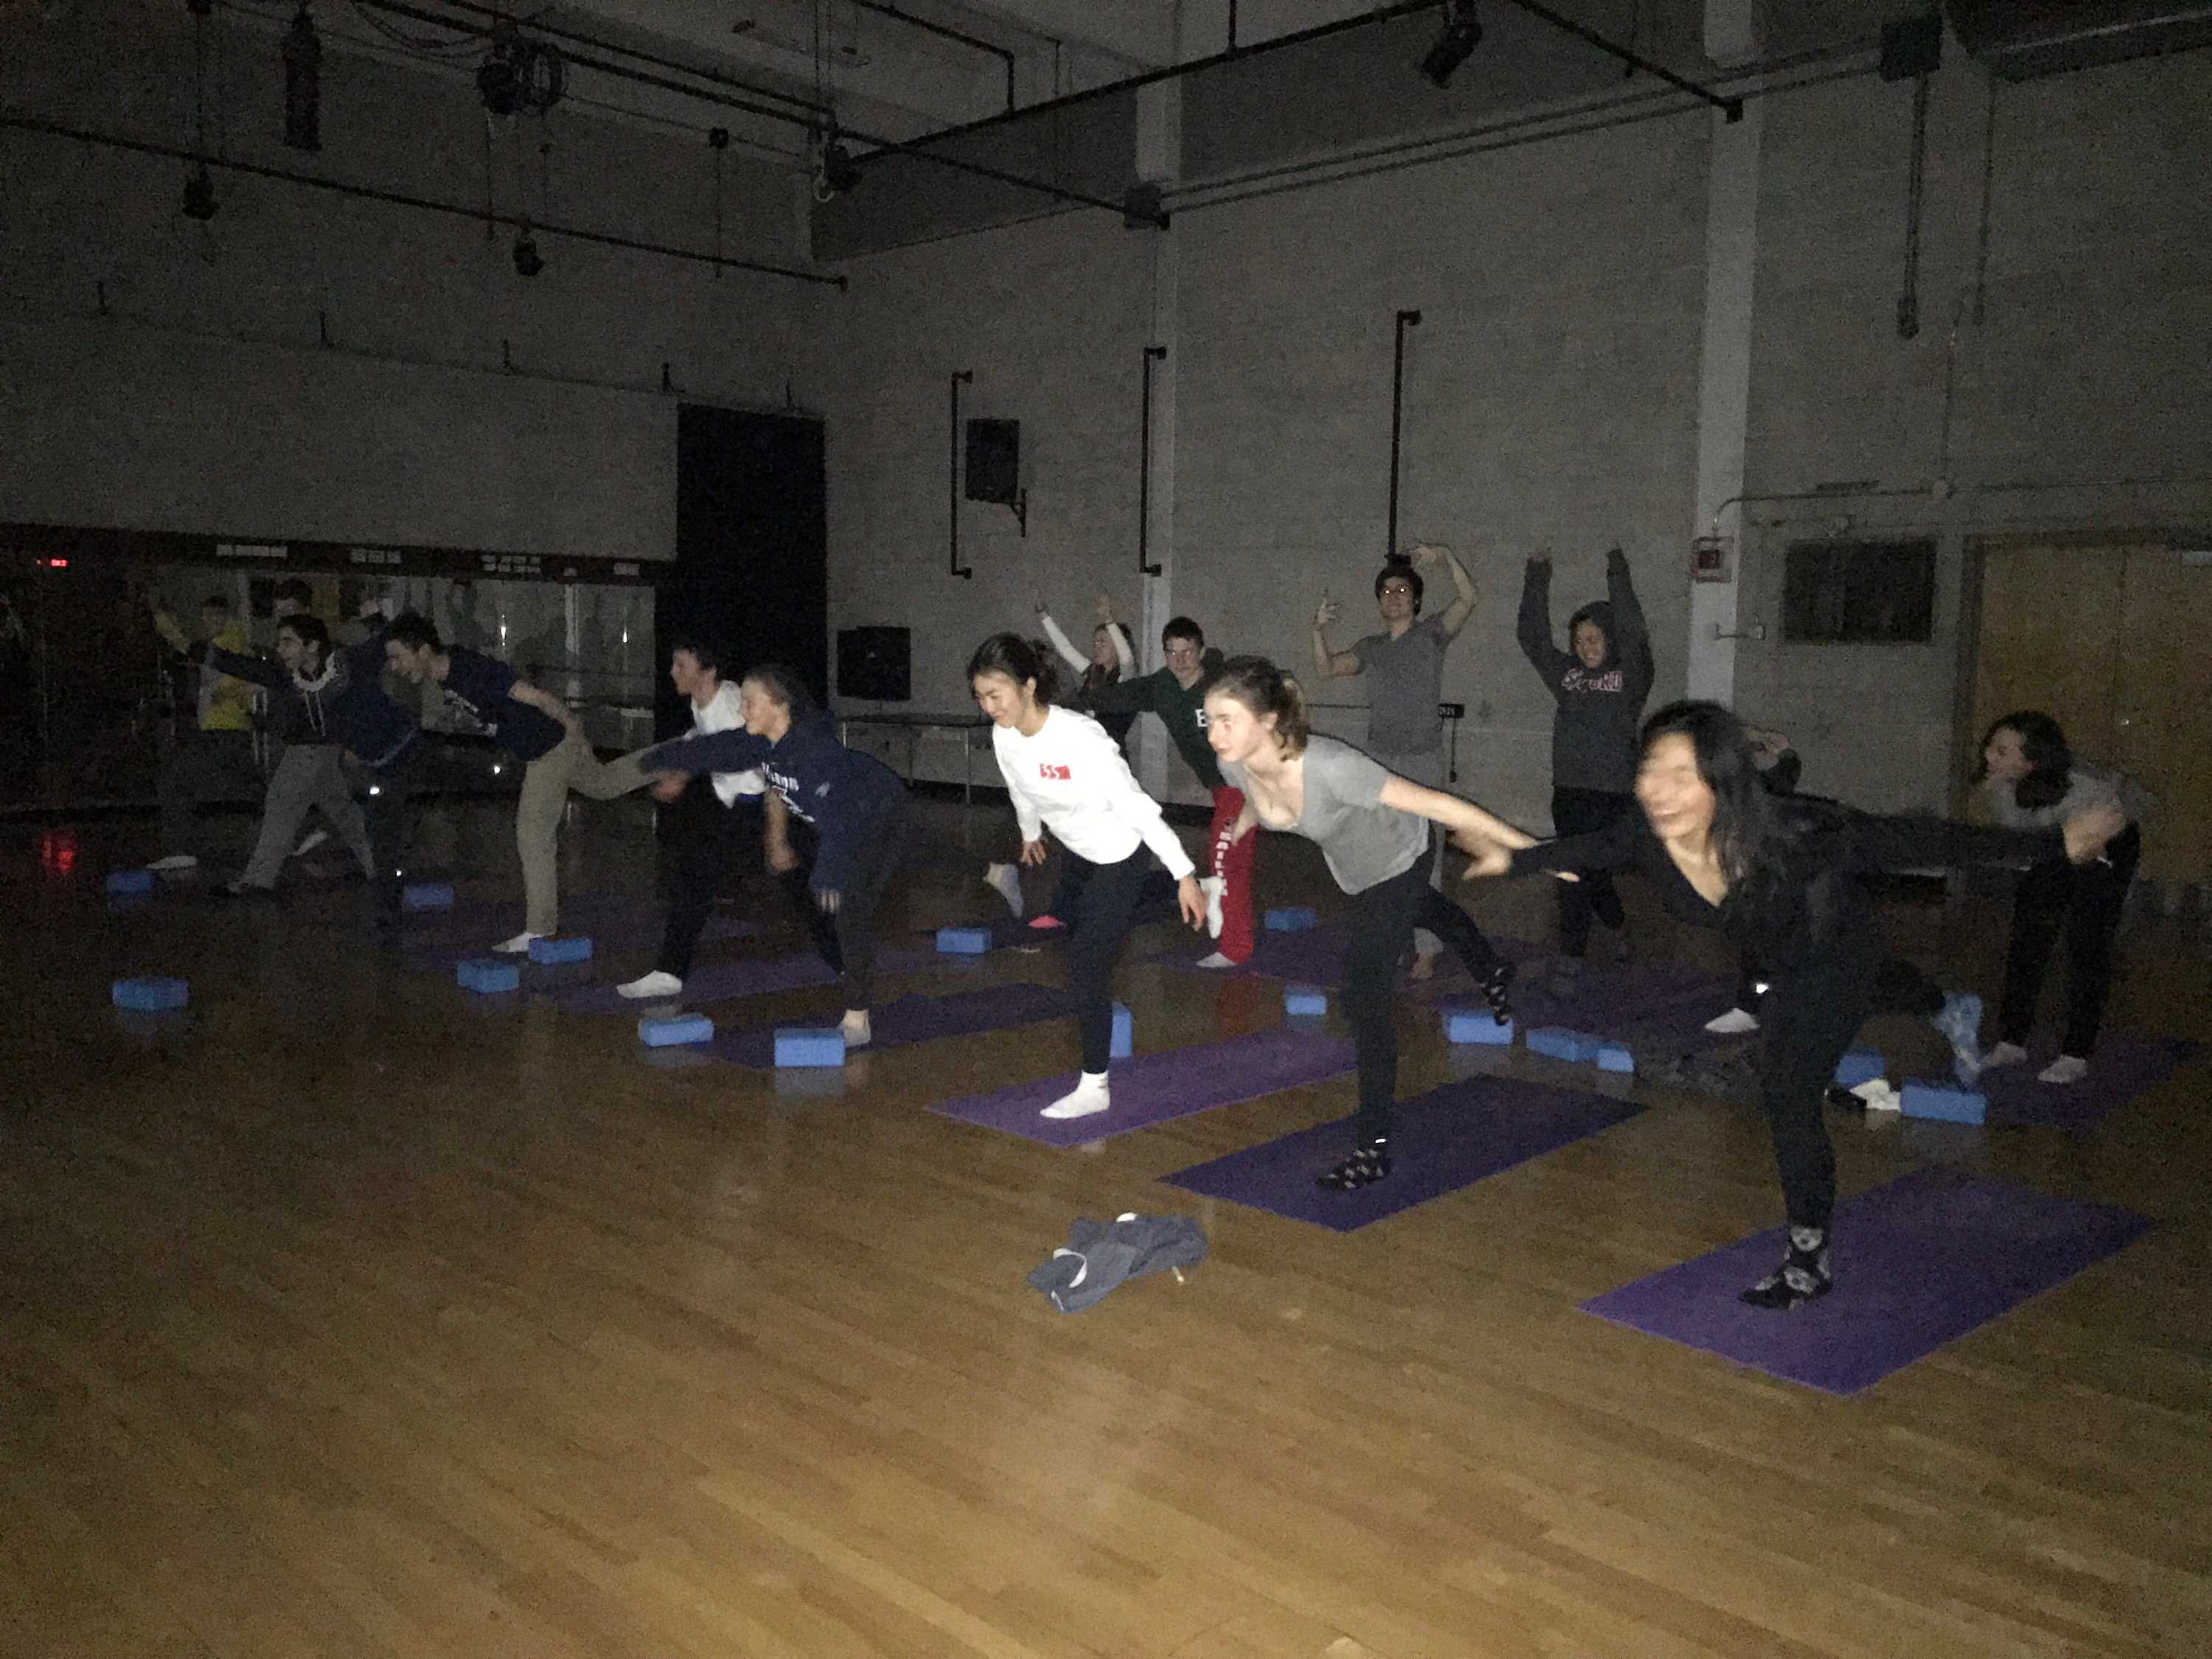 The ski team does yoga to relax and work out. Sophomore Emi Tsukada said that yoga helps team spirit as well as physical health